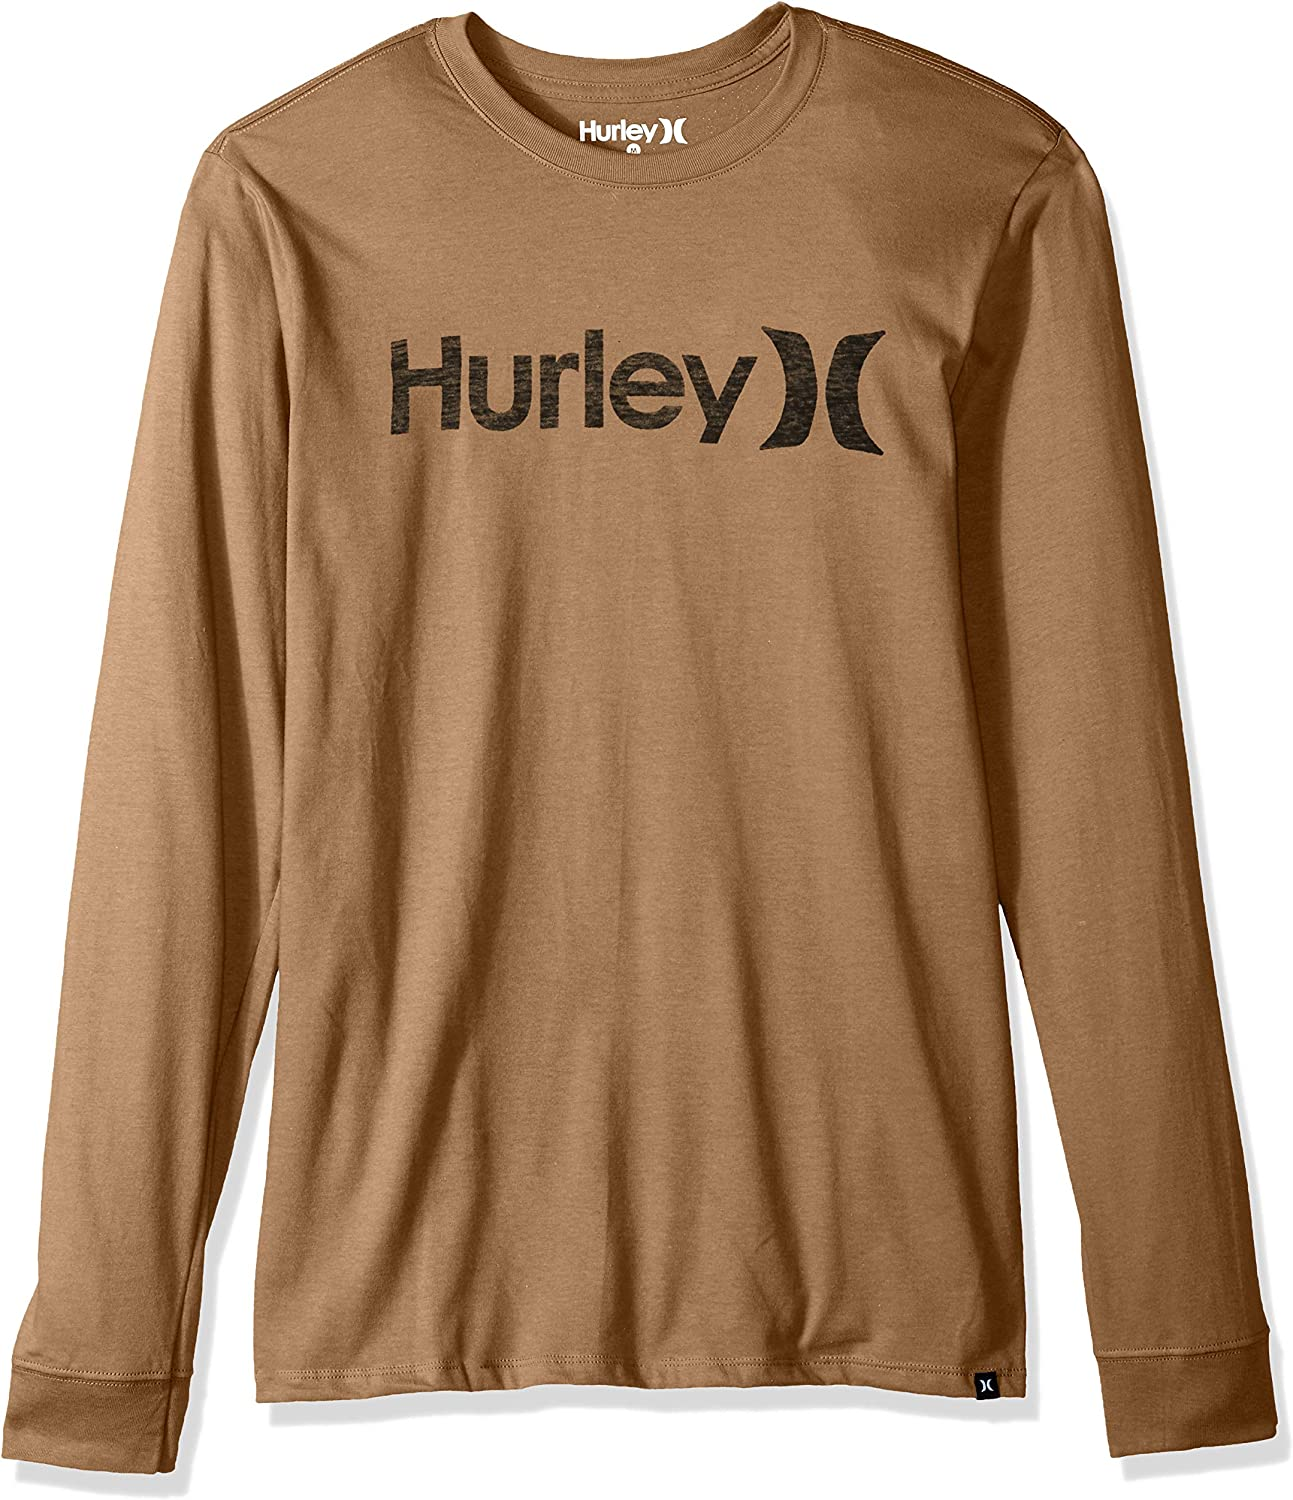 Hurley Men's One Only Push Thru Tee Long Shirt Graphic Sleeve Max 1 year warranty 68% OFF